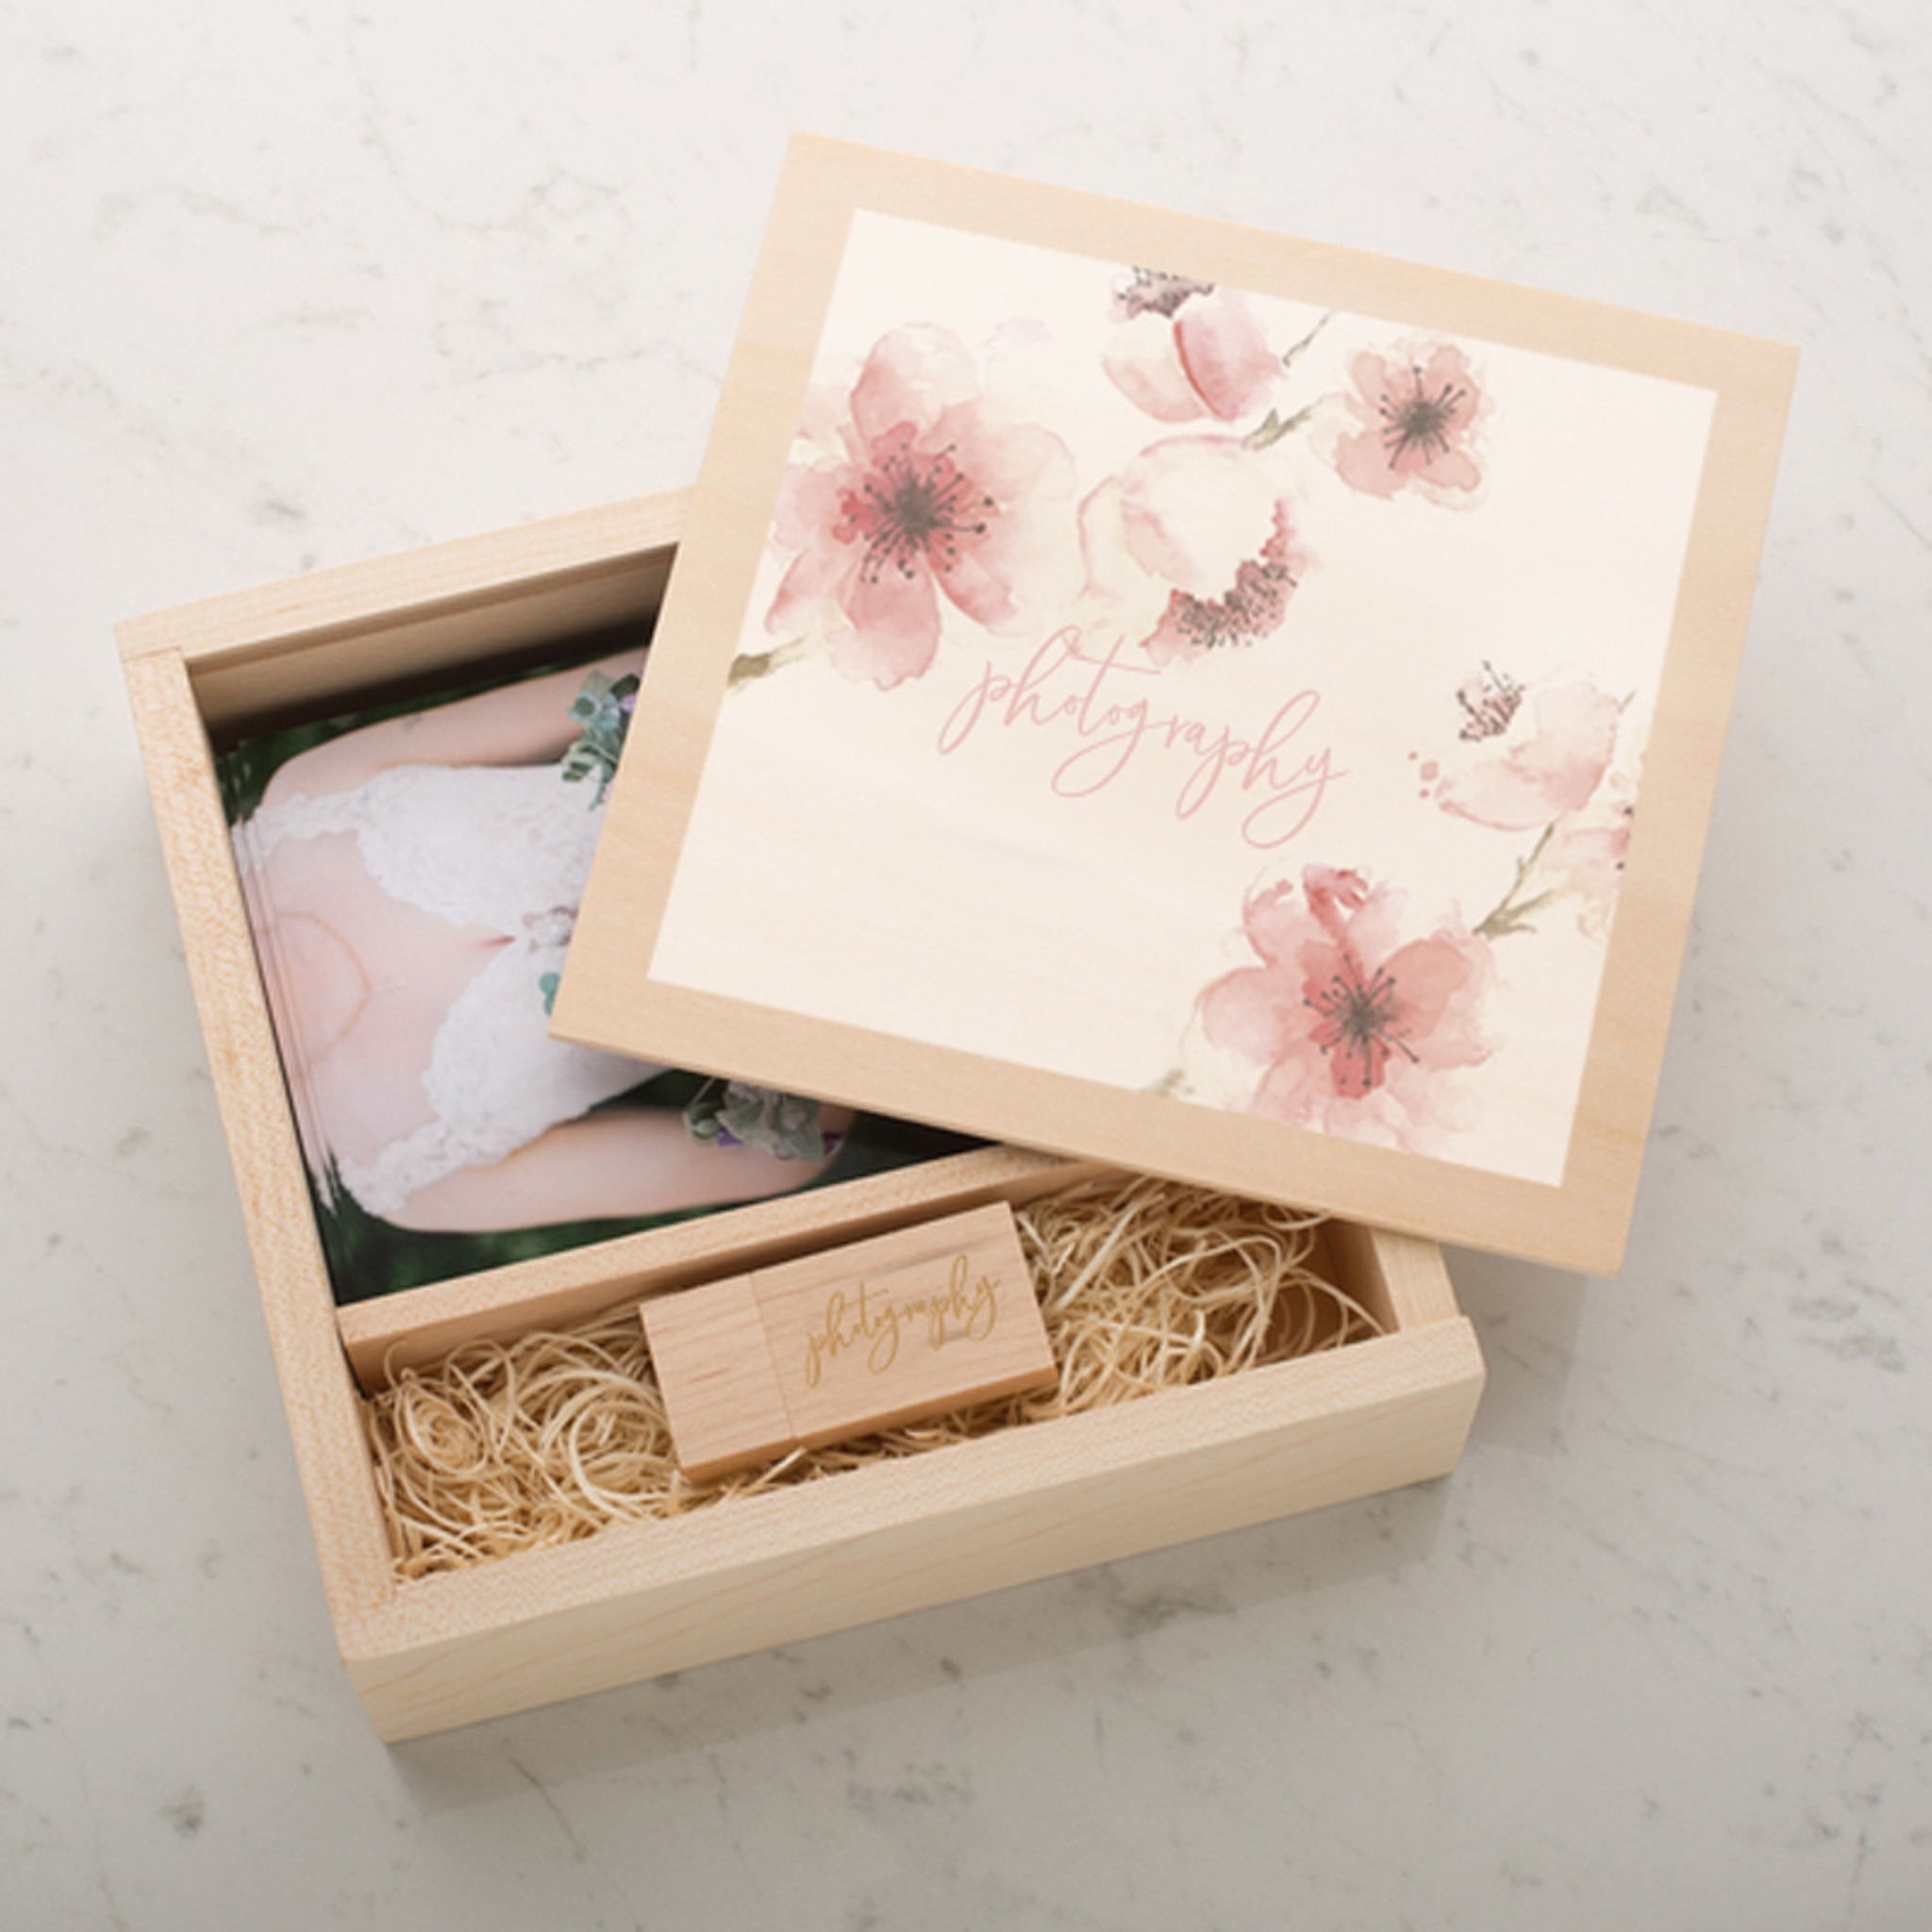 Jumbo Size Photo Usb Flash Drive Wooden Gift Boxes For